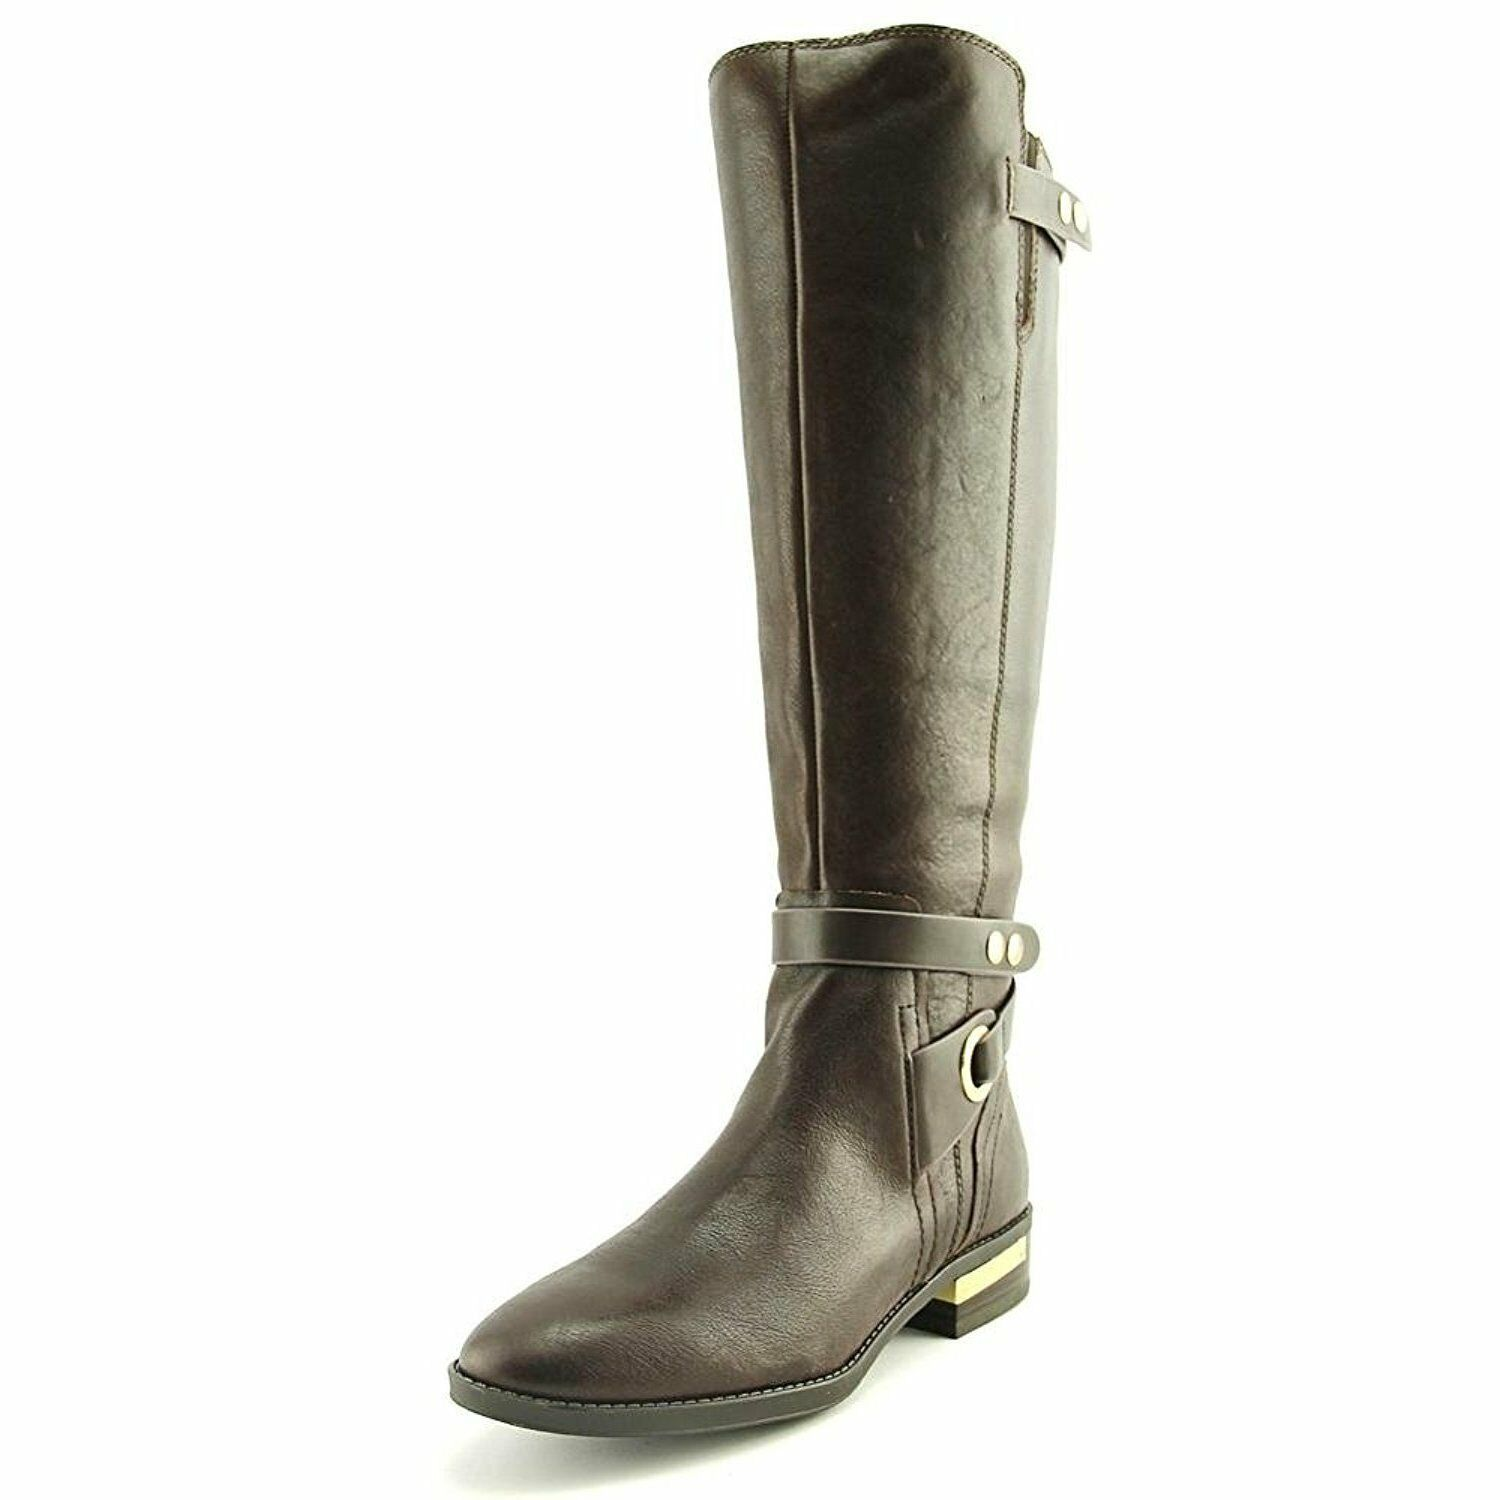 Vince Camuto Prini Round Toe Leather Knee High Boot, Coffee Grind Easy Rider/New